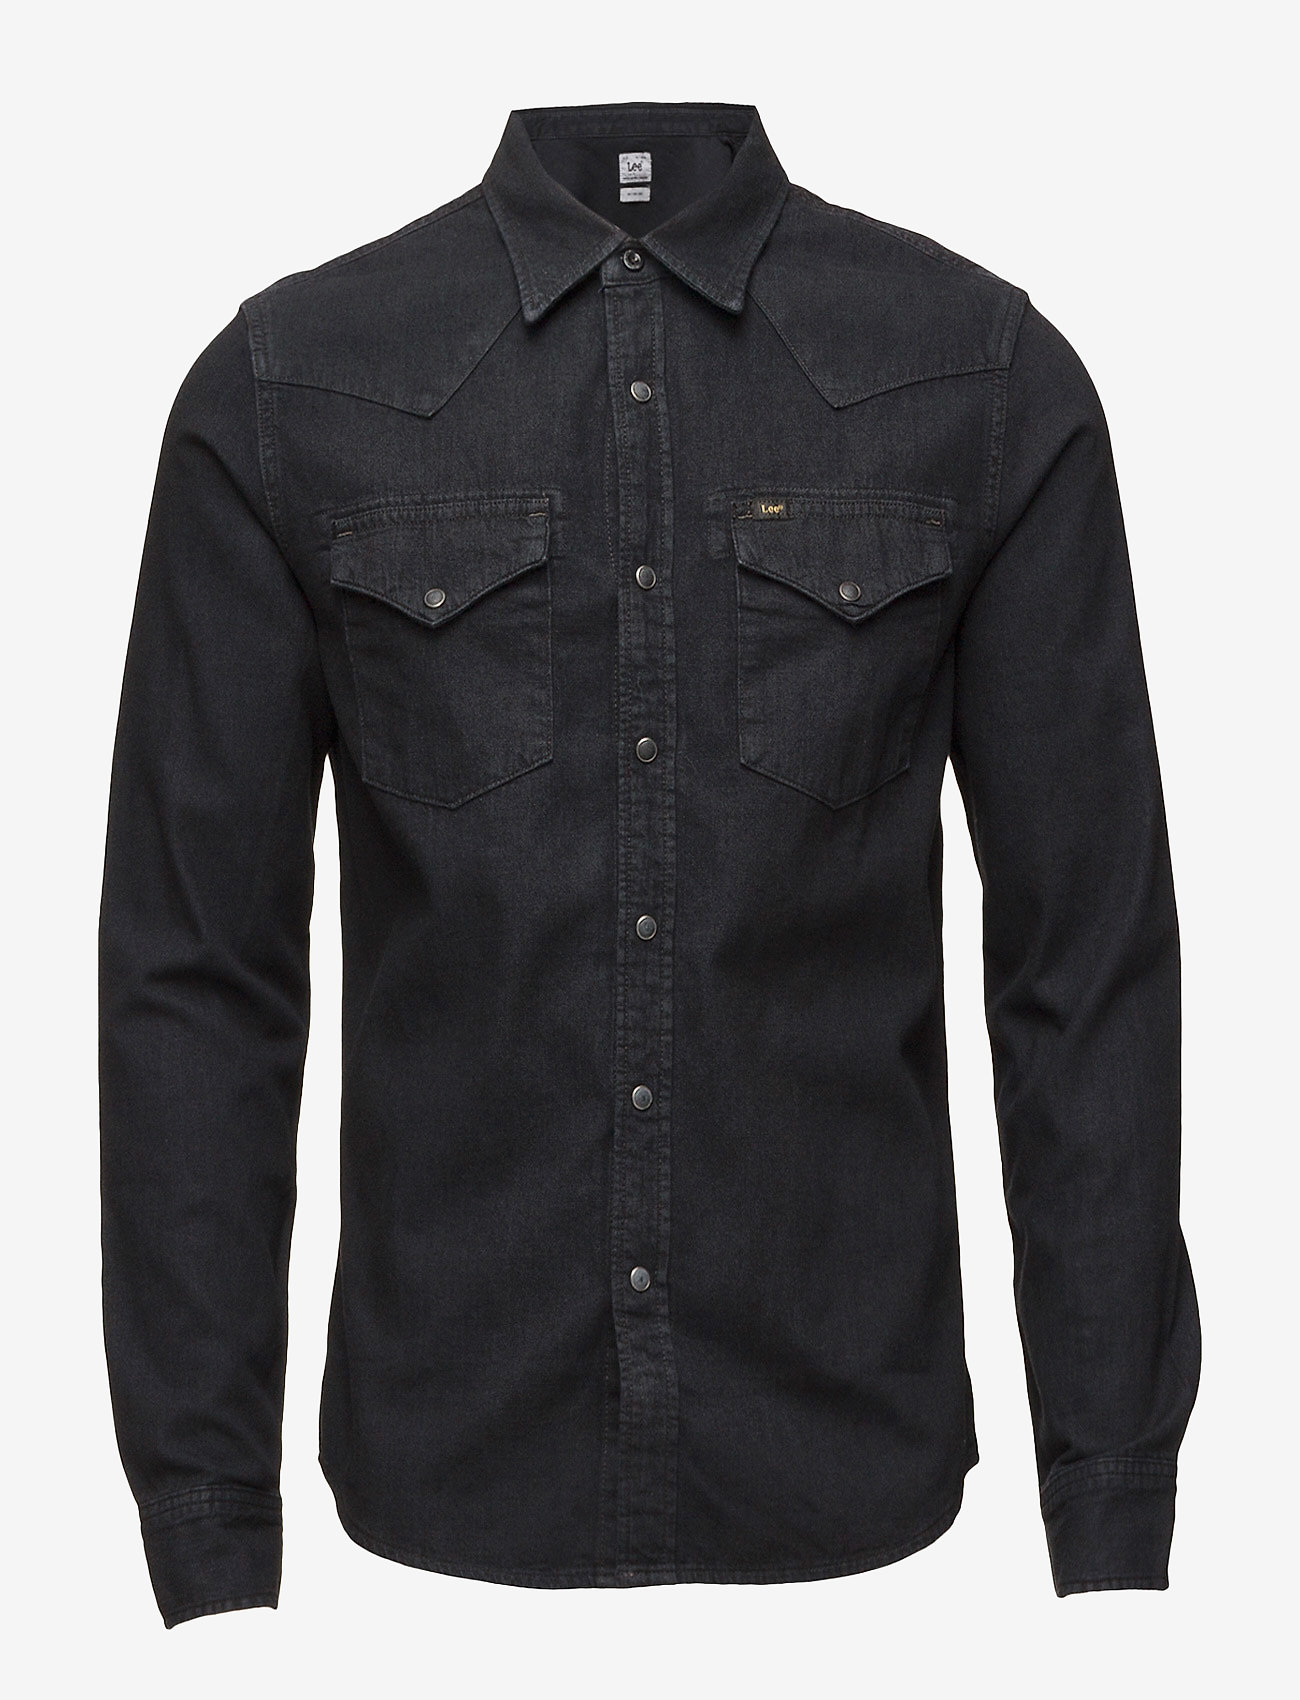 Lee Western Shirt Pitch Black (Pitch Black) (674.25 kr